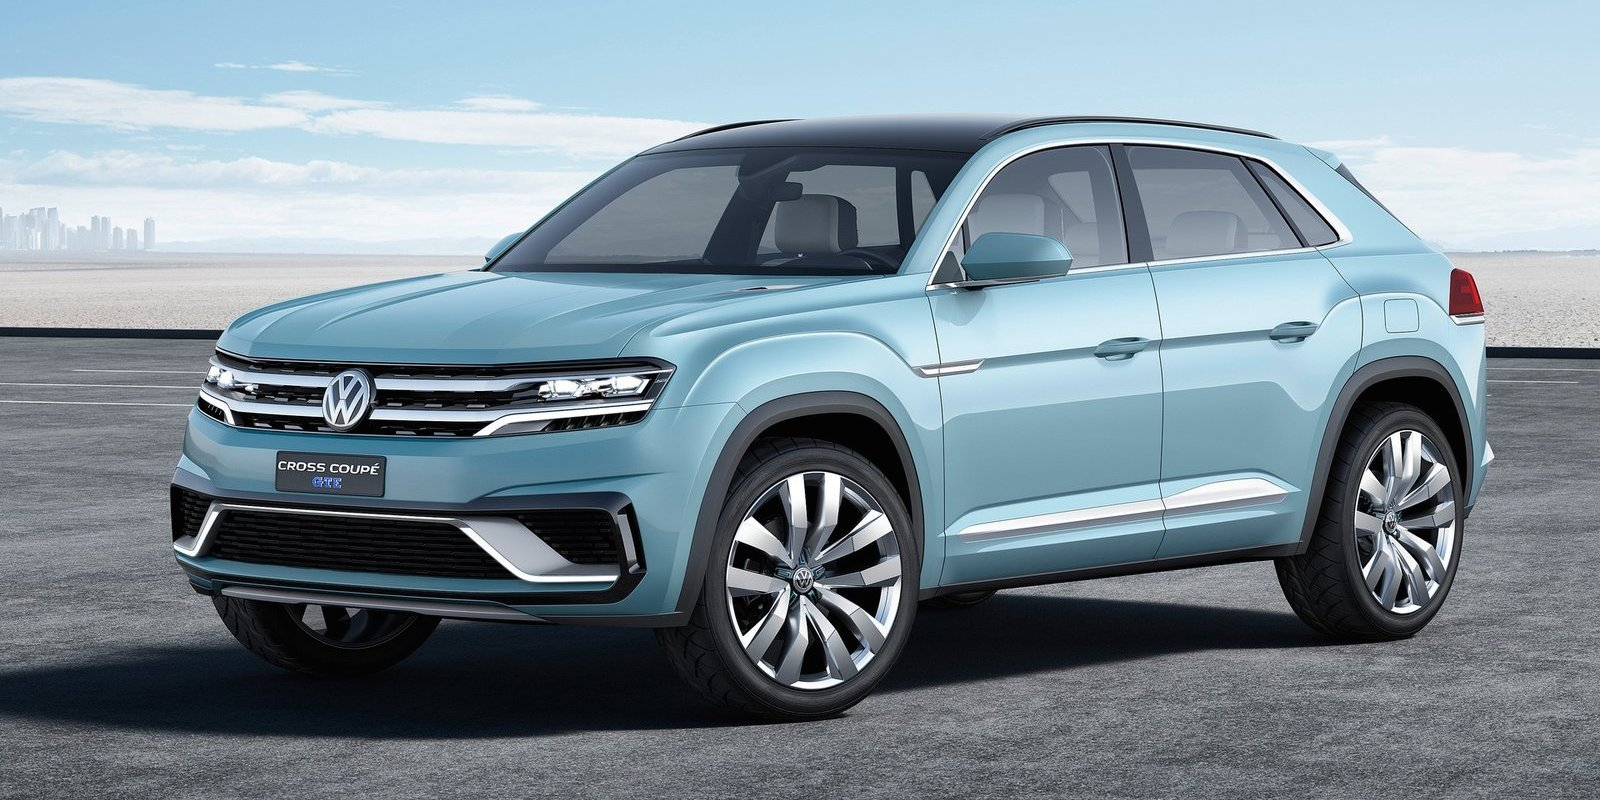 volkswagen tiguan seater mexico seven built coupe vw confirmed cross suv cars gte caradvice seats на line mitsubishi ford